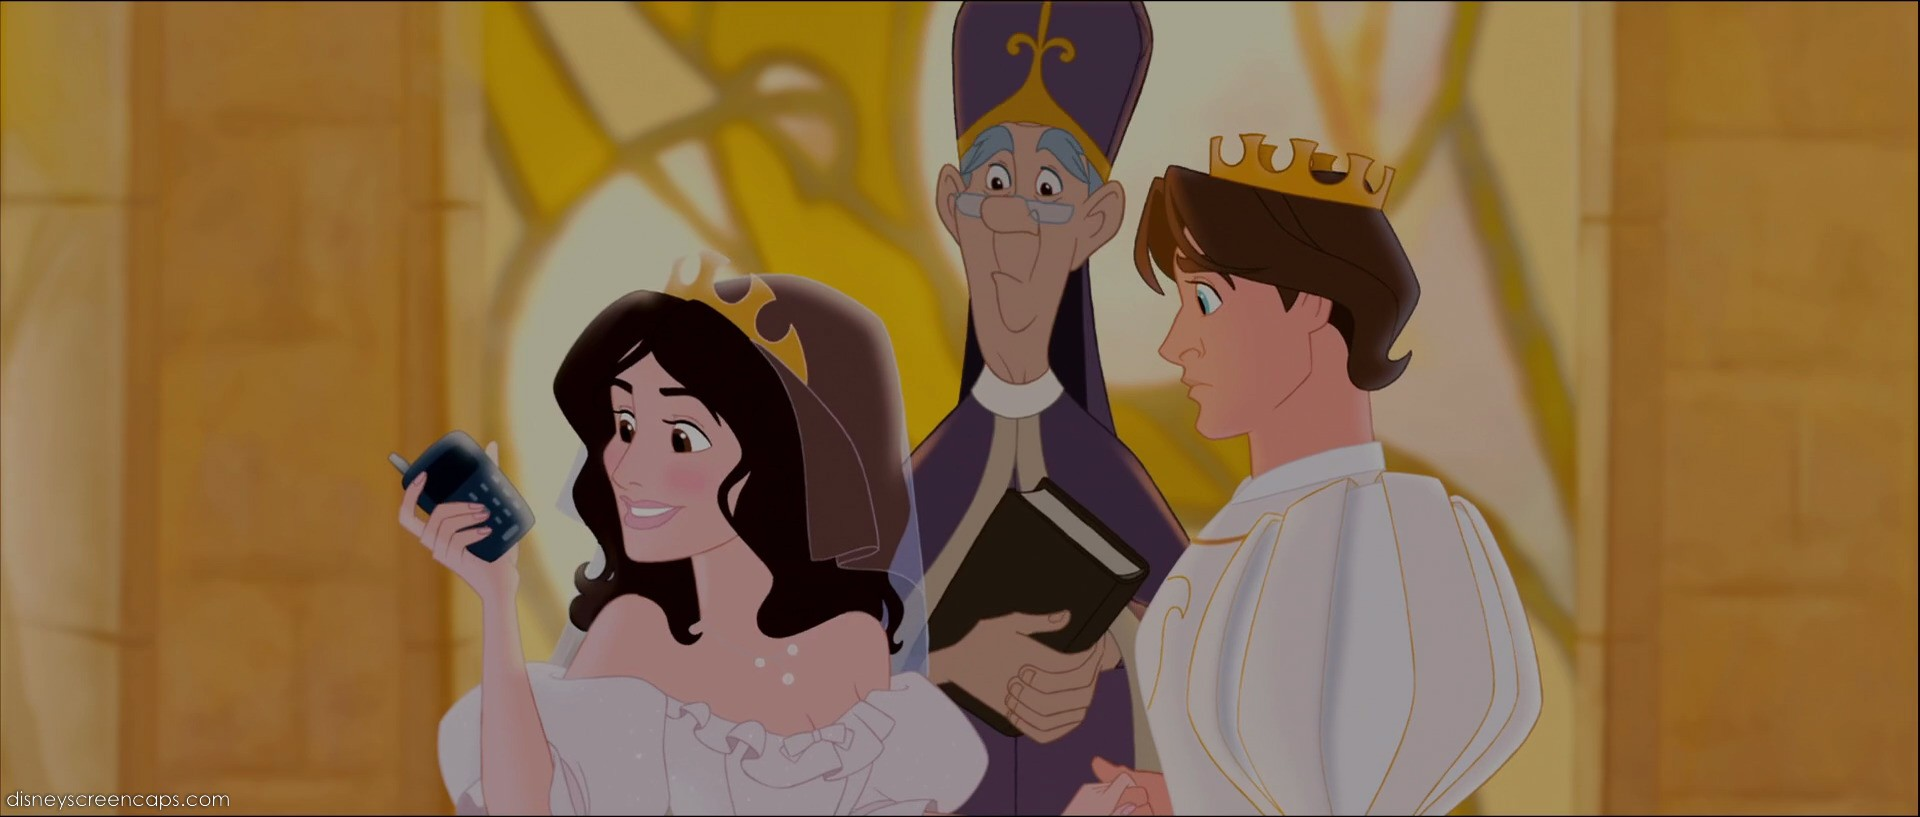 Nancy Tremaine (voice by Idina Menzel) and Prince Edward (voiced by James Marsden) getting married in Andalasia Enchanted picture image